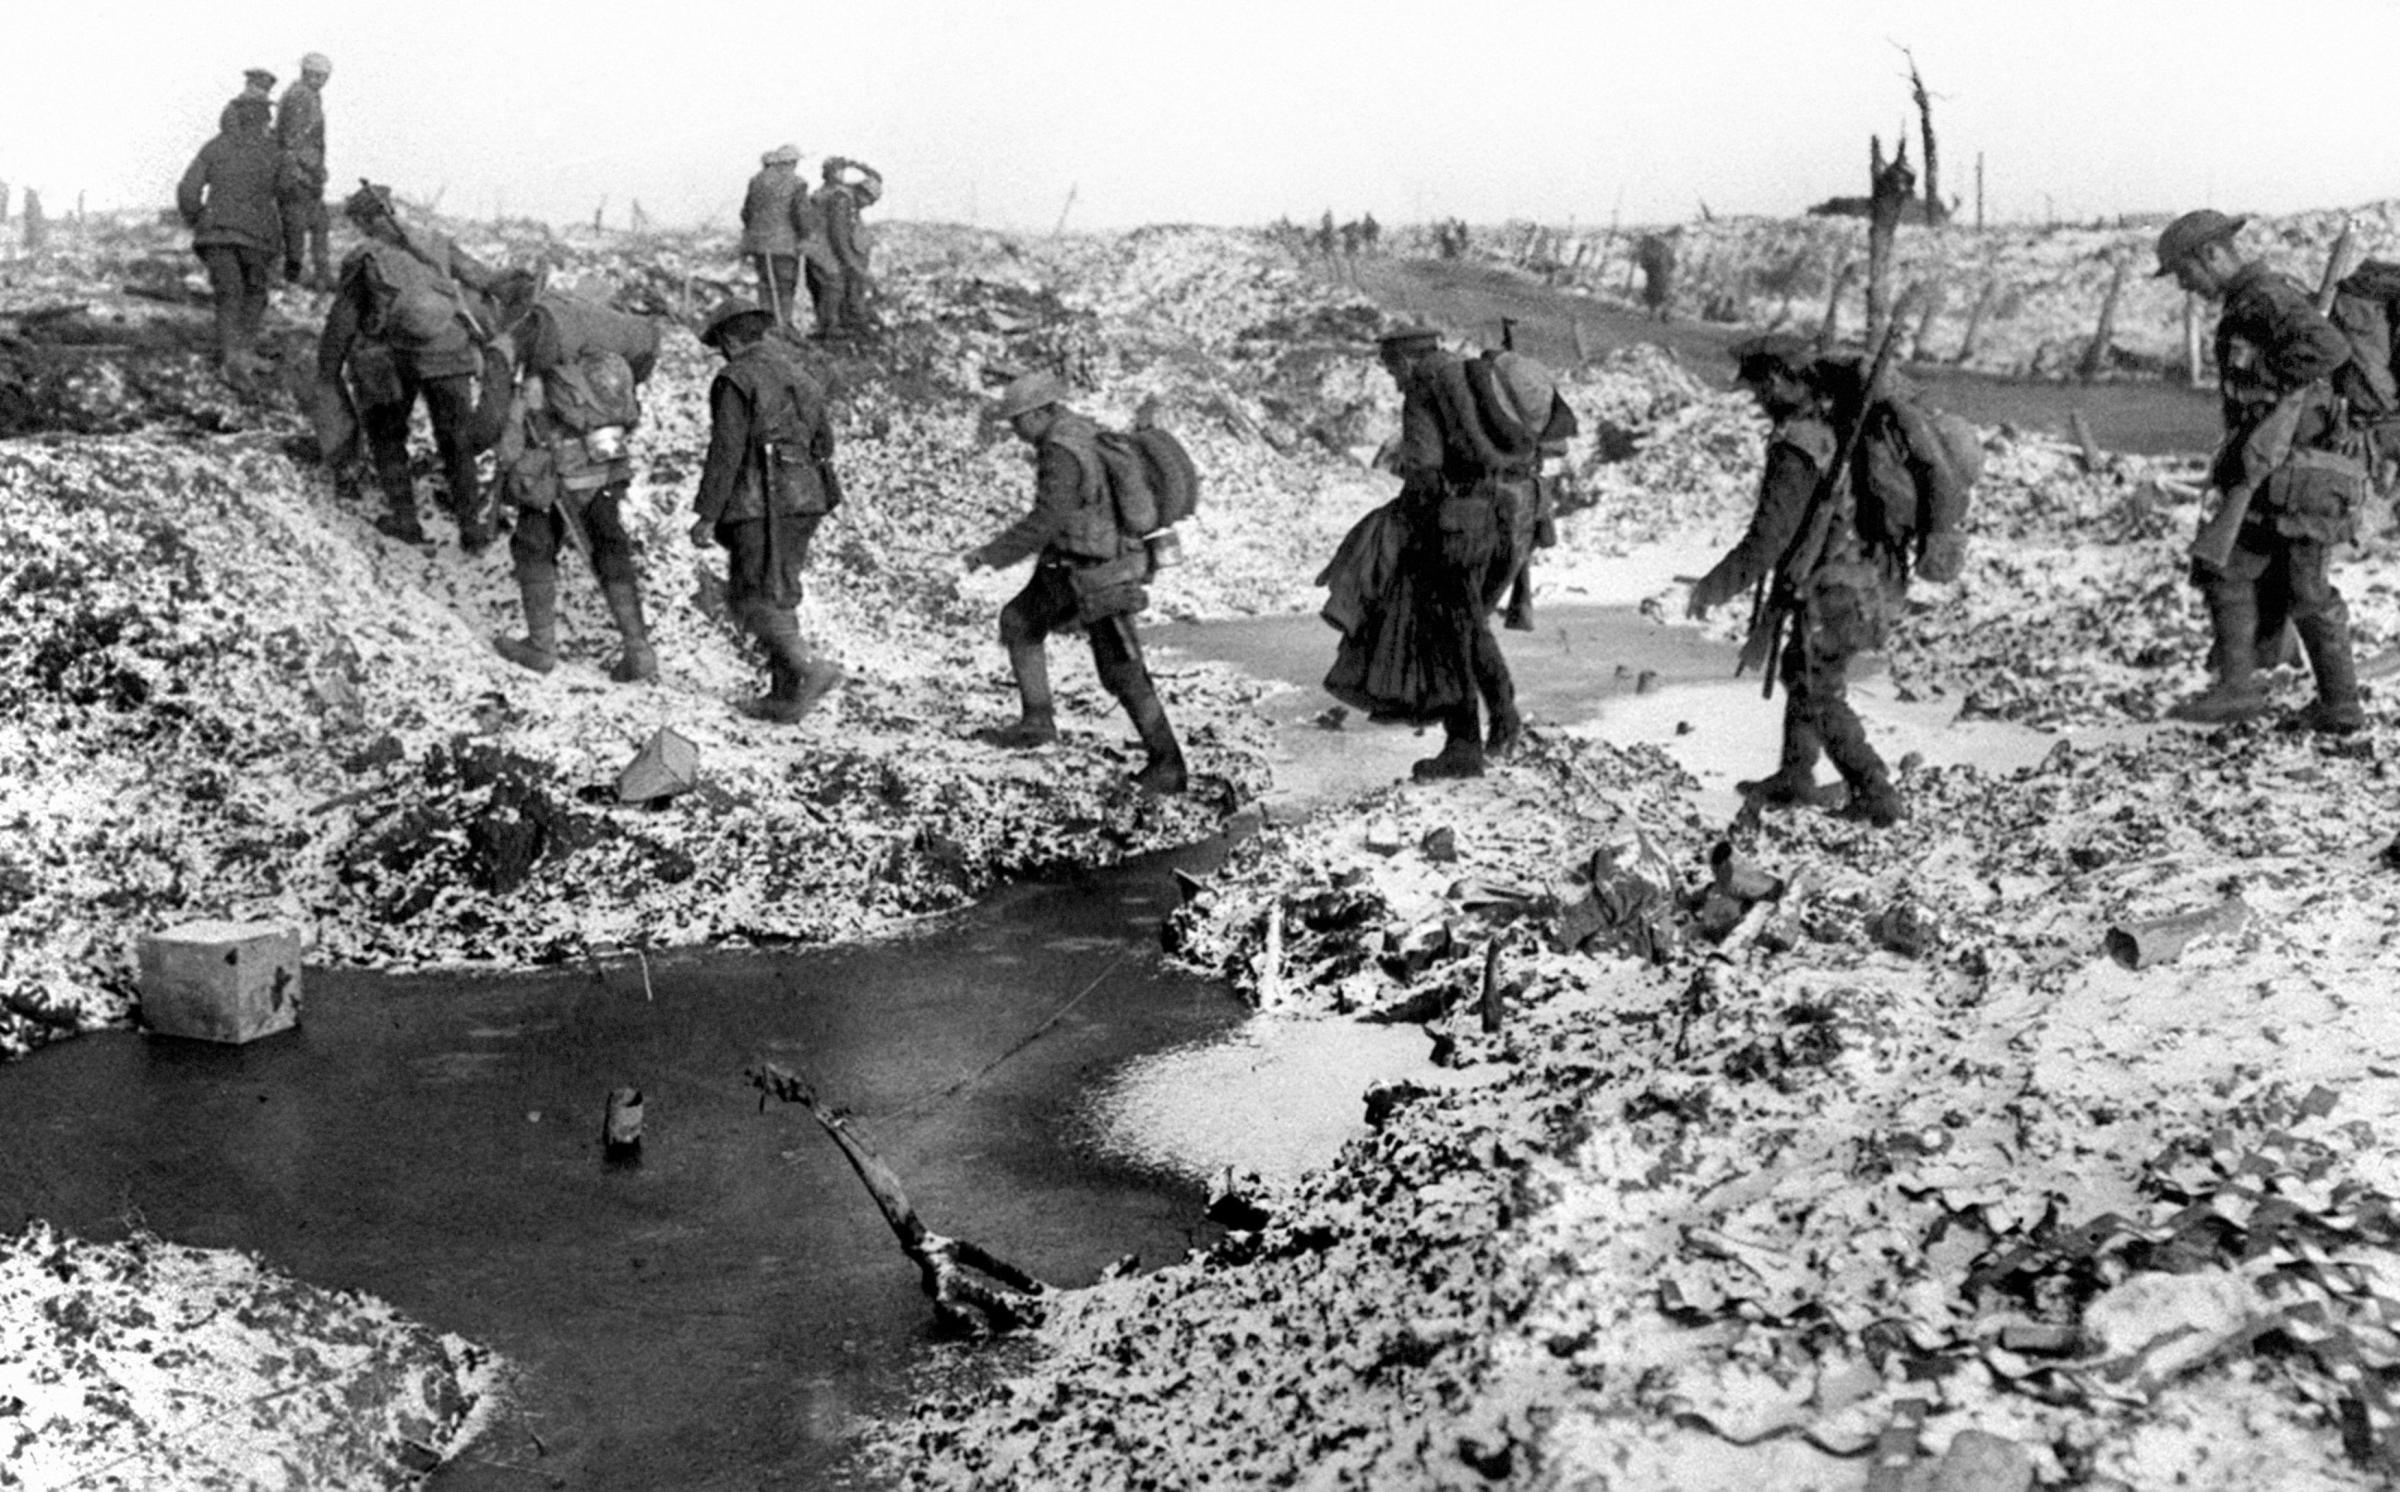 British soldiers negotiating a shell-cratered, Winter landscape along the River Somme in late 1916 after the close of the Allied